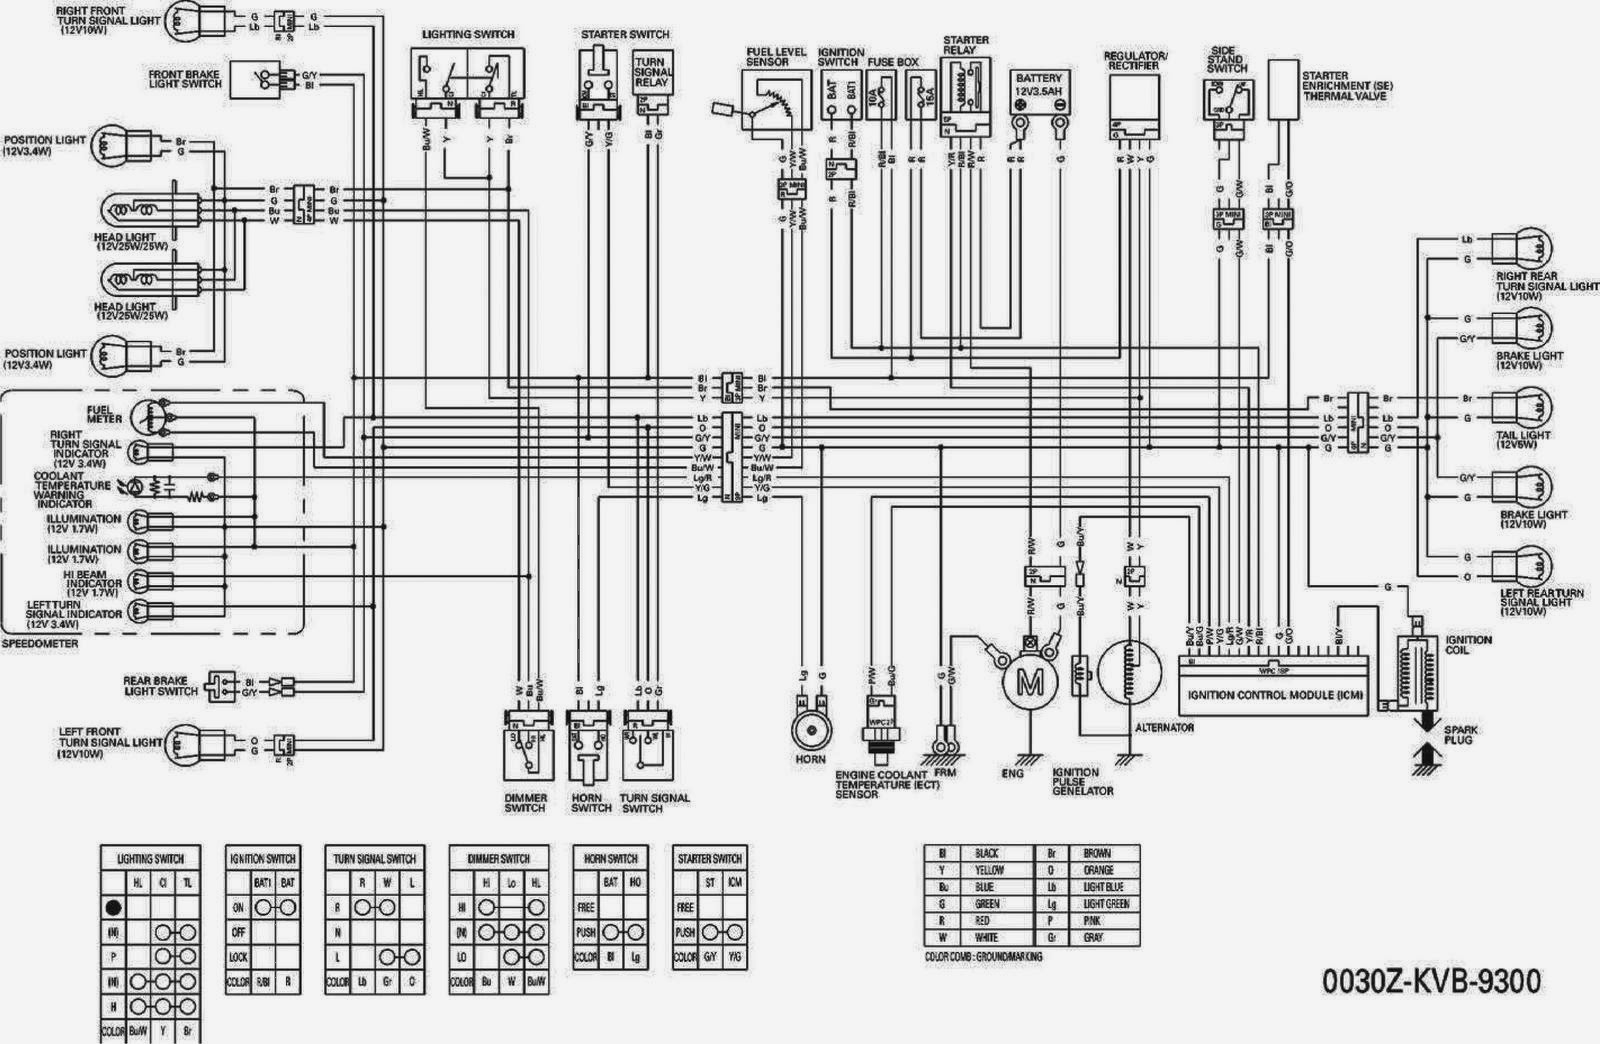 Wiring Diagram Yamaha Vega : Yamaha remote control wiring diagram the